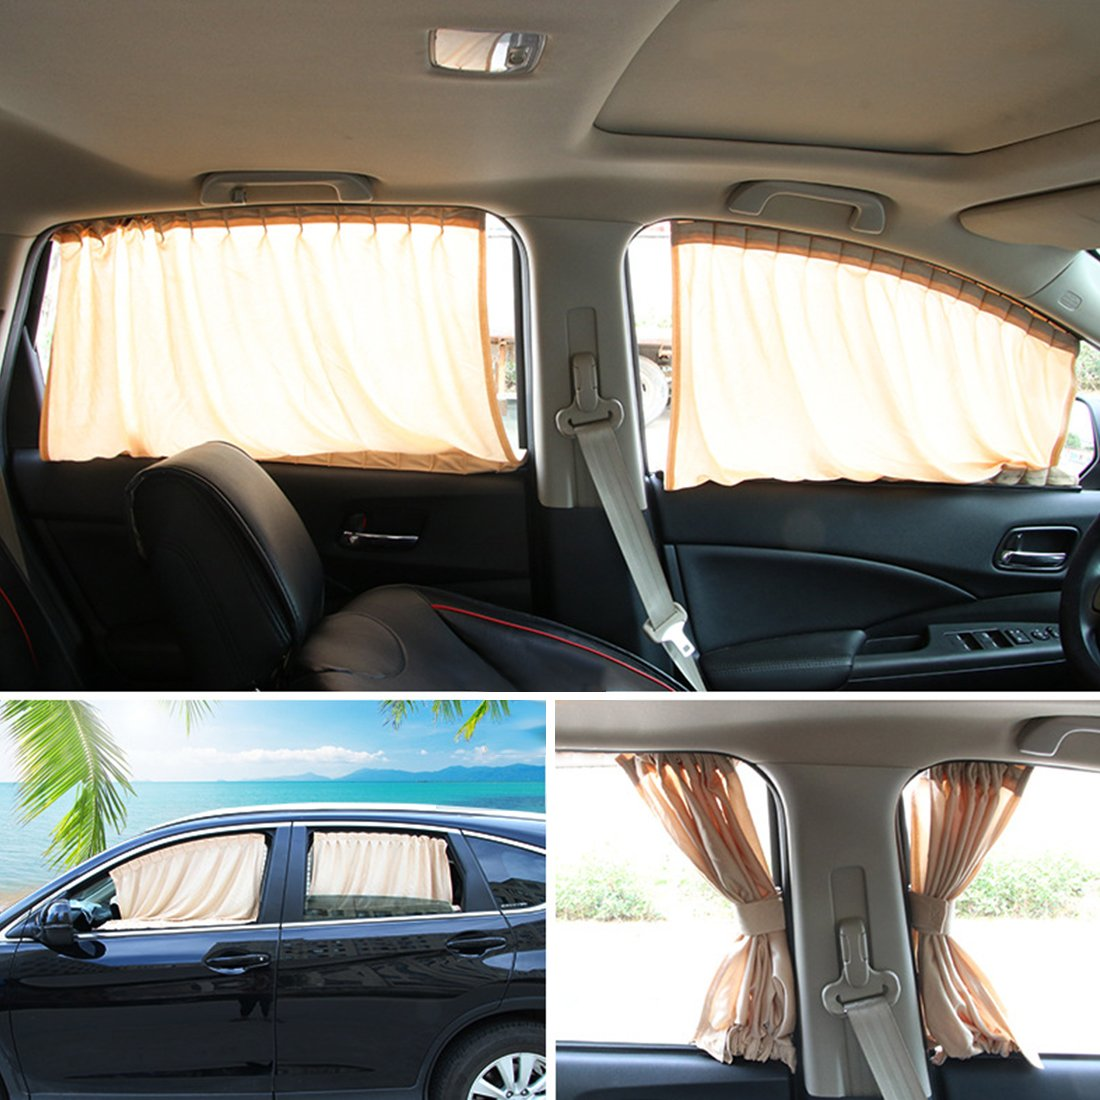 Andux Land Car Window Shade Curtain Cotton Sunshade UV Protection PBCL-01, a pair (Grey, 50S)